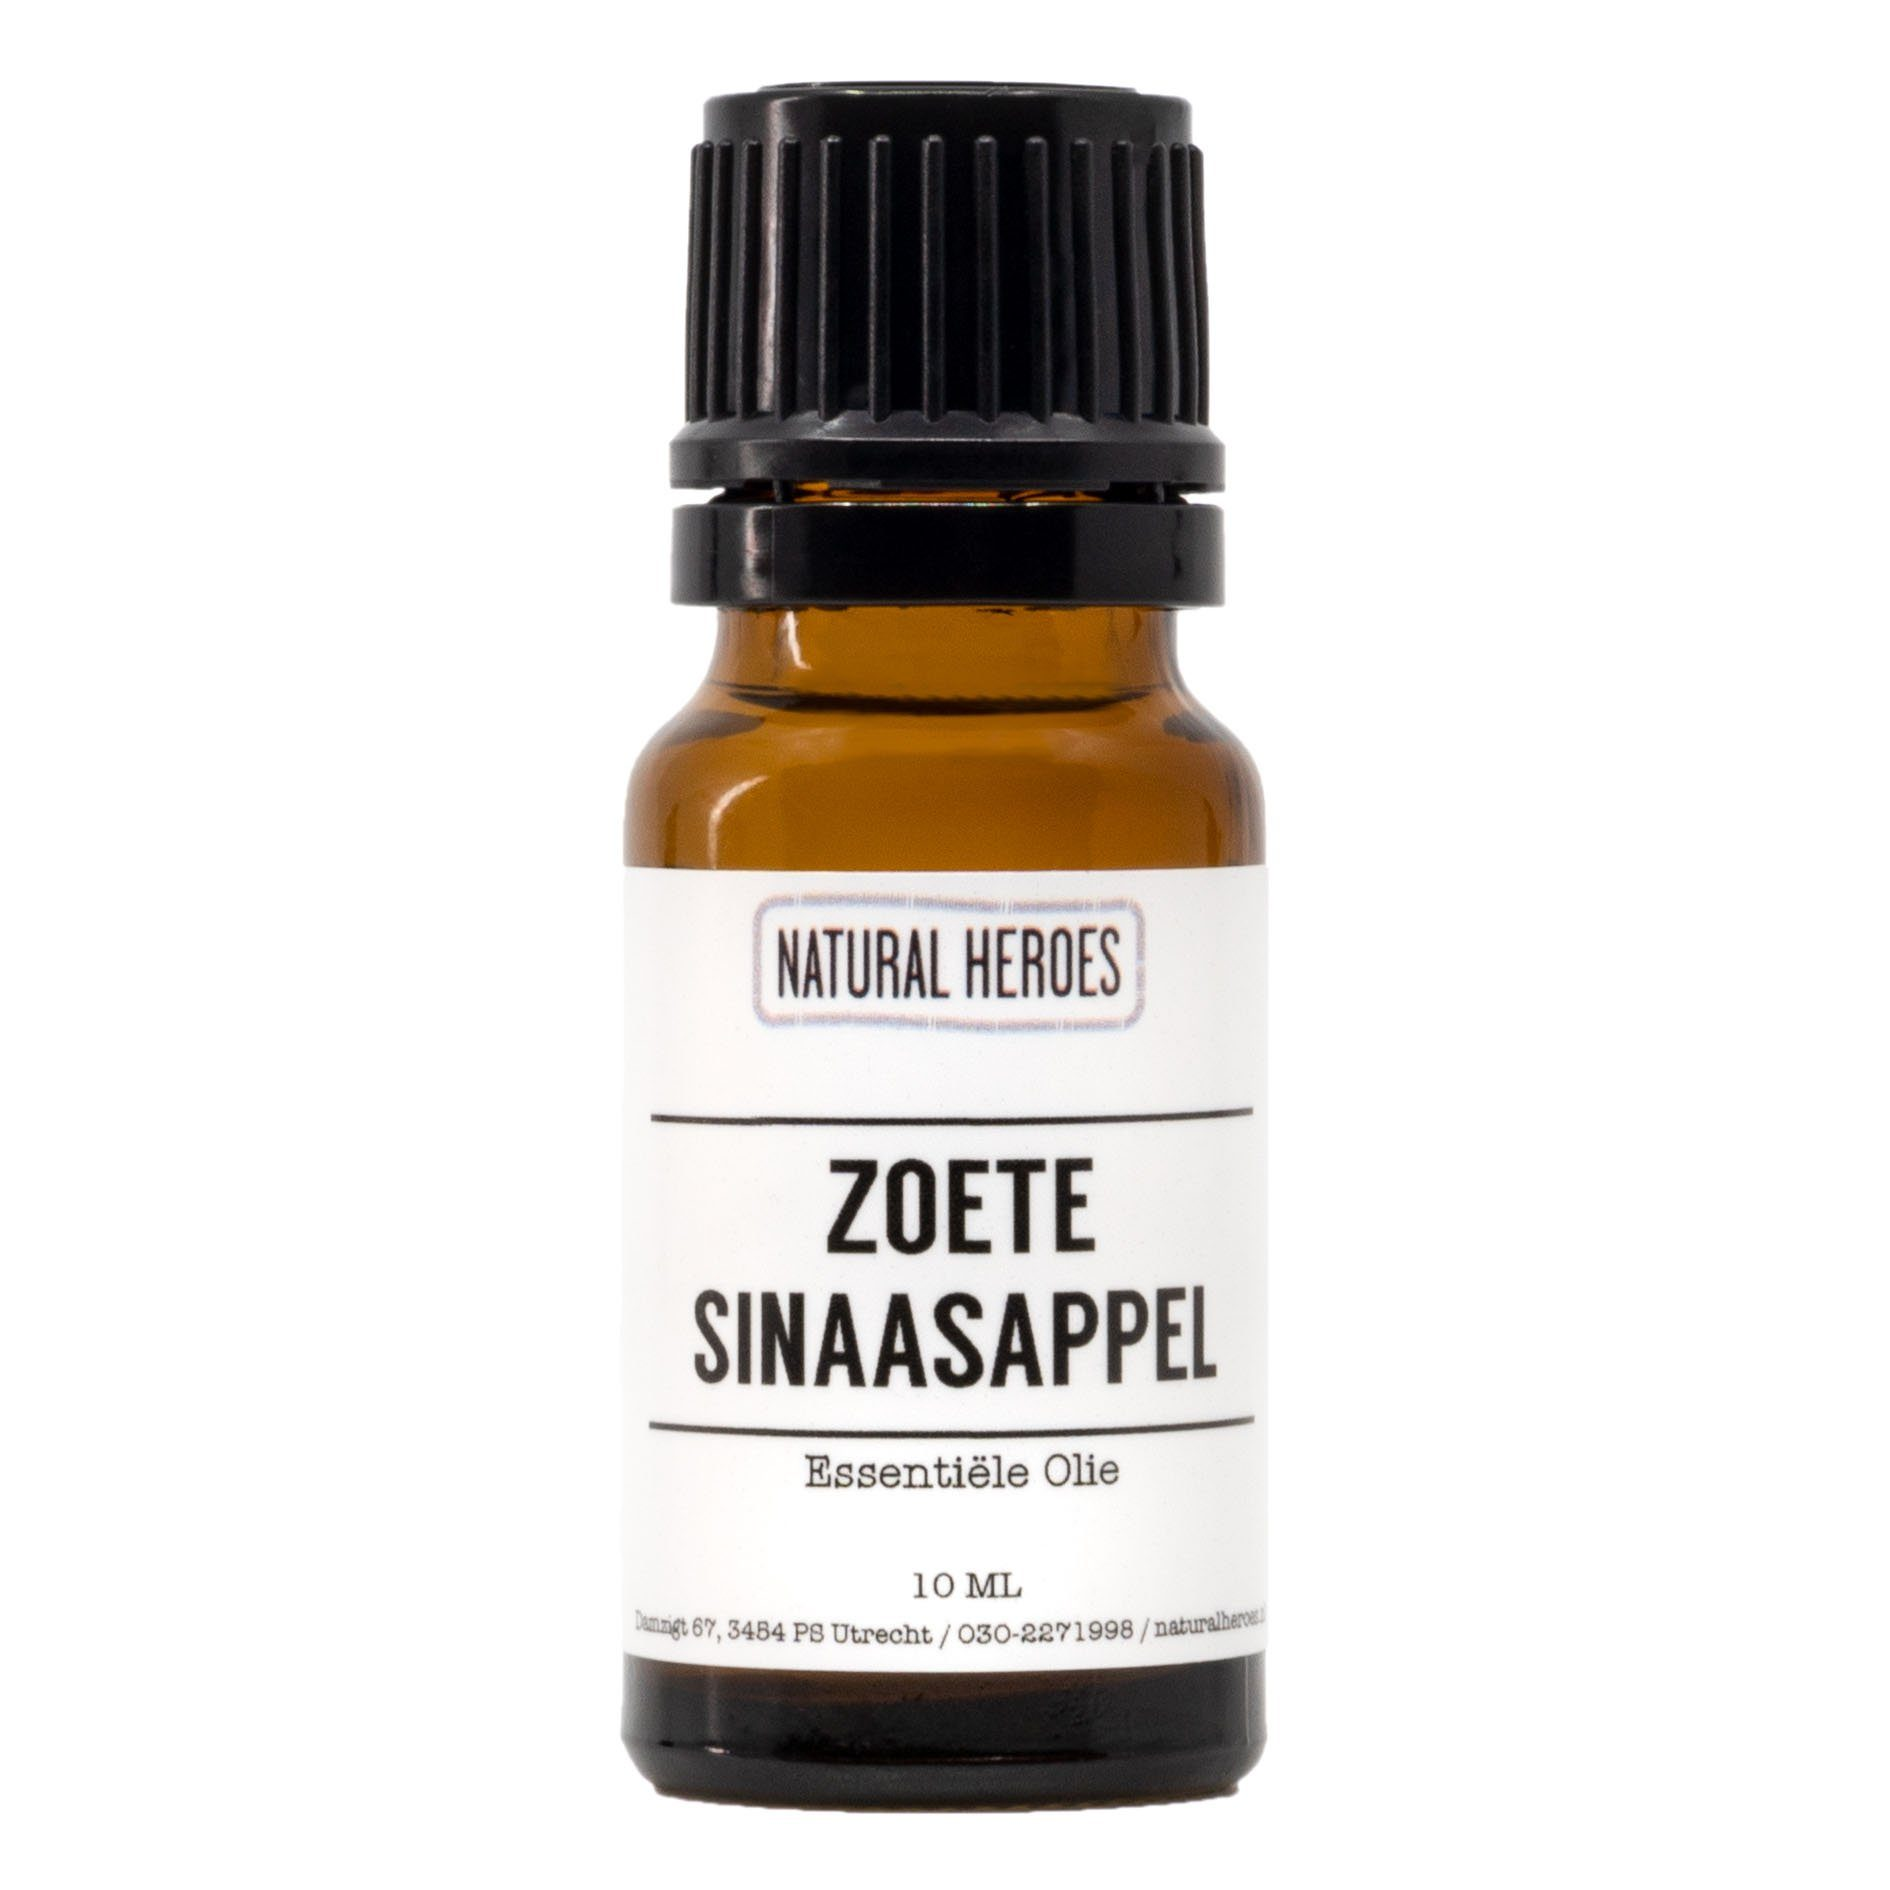 Zoete Sinaasappel Essentiële Olie Natural Heroes 10 ml